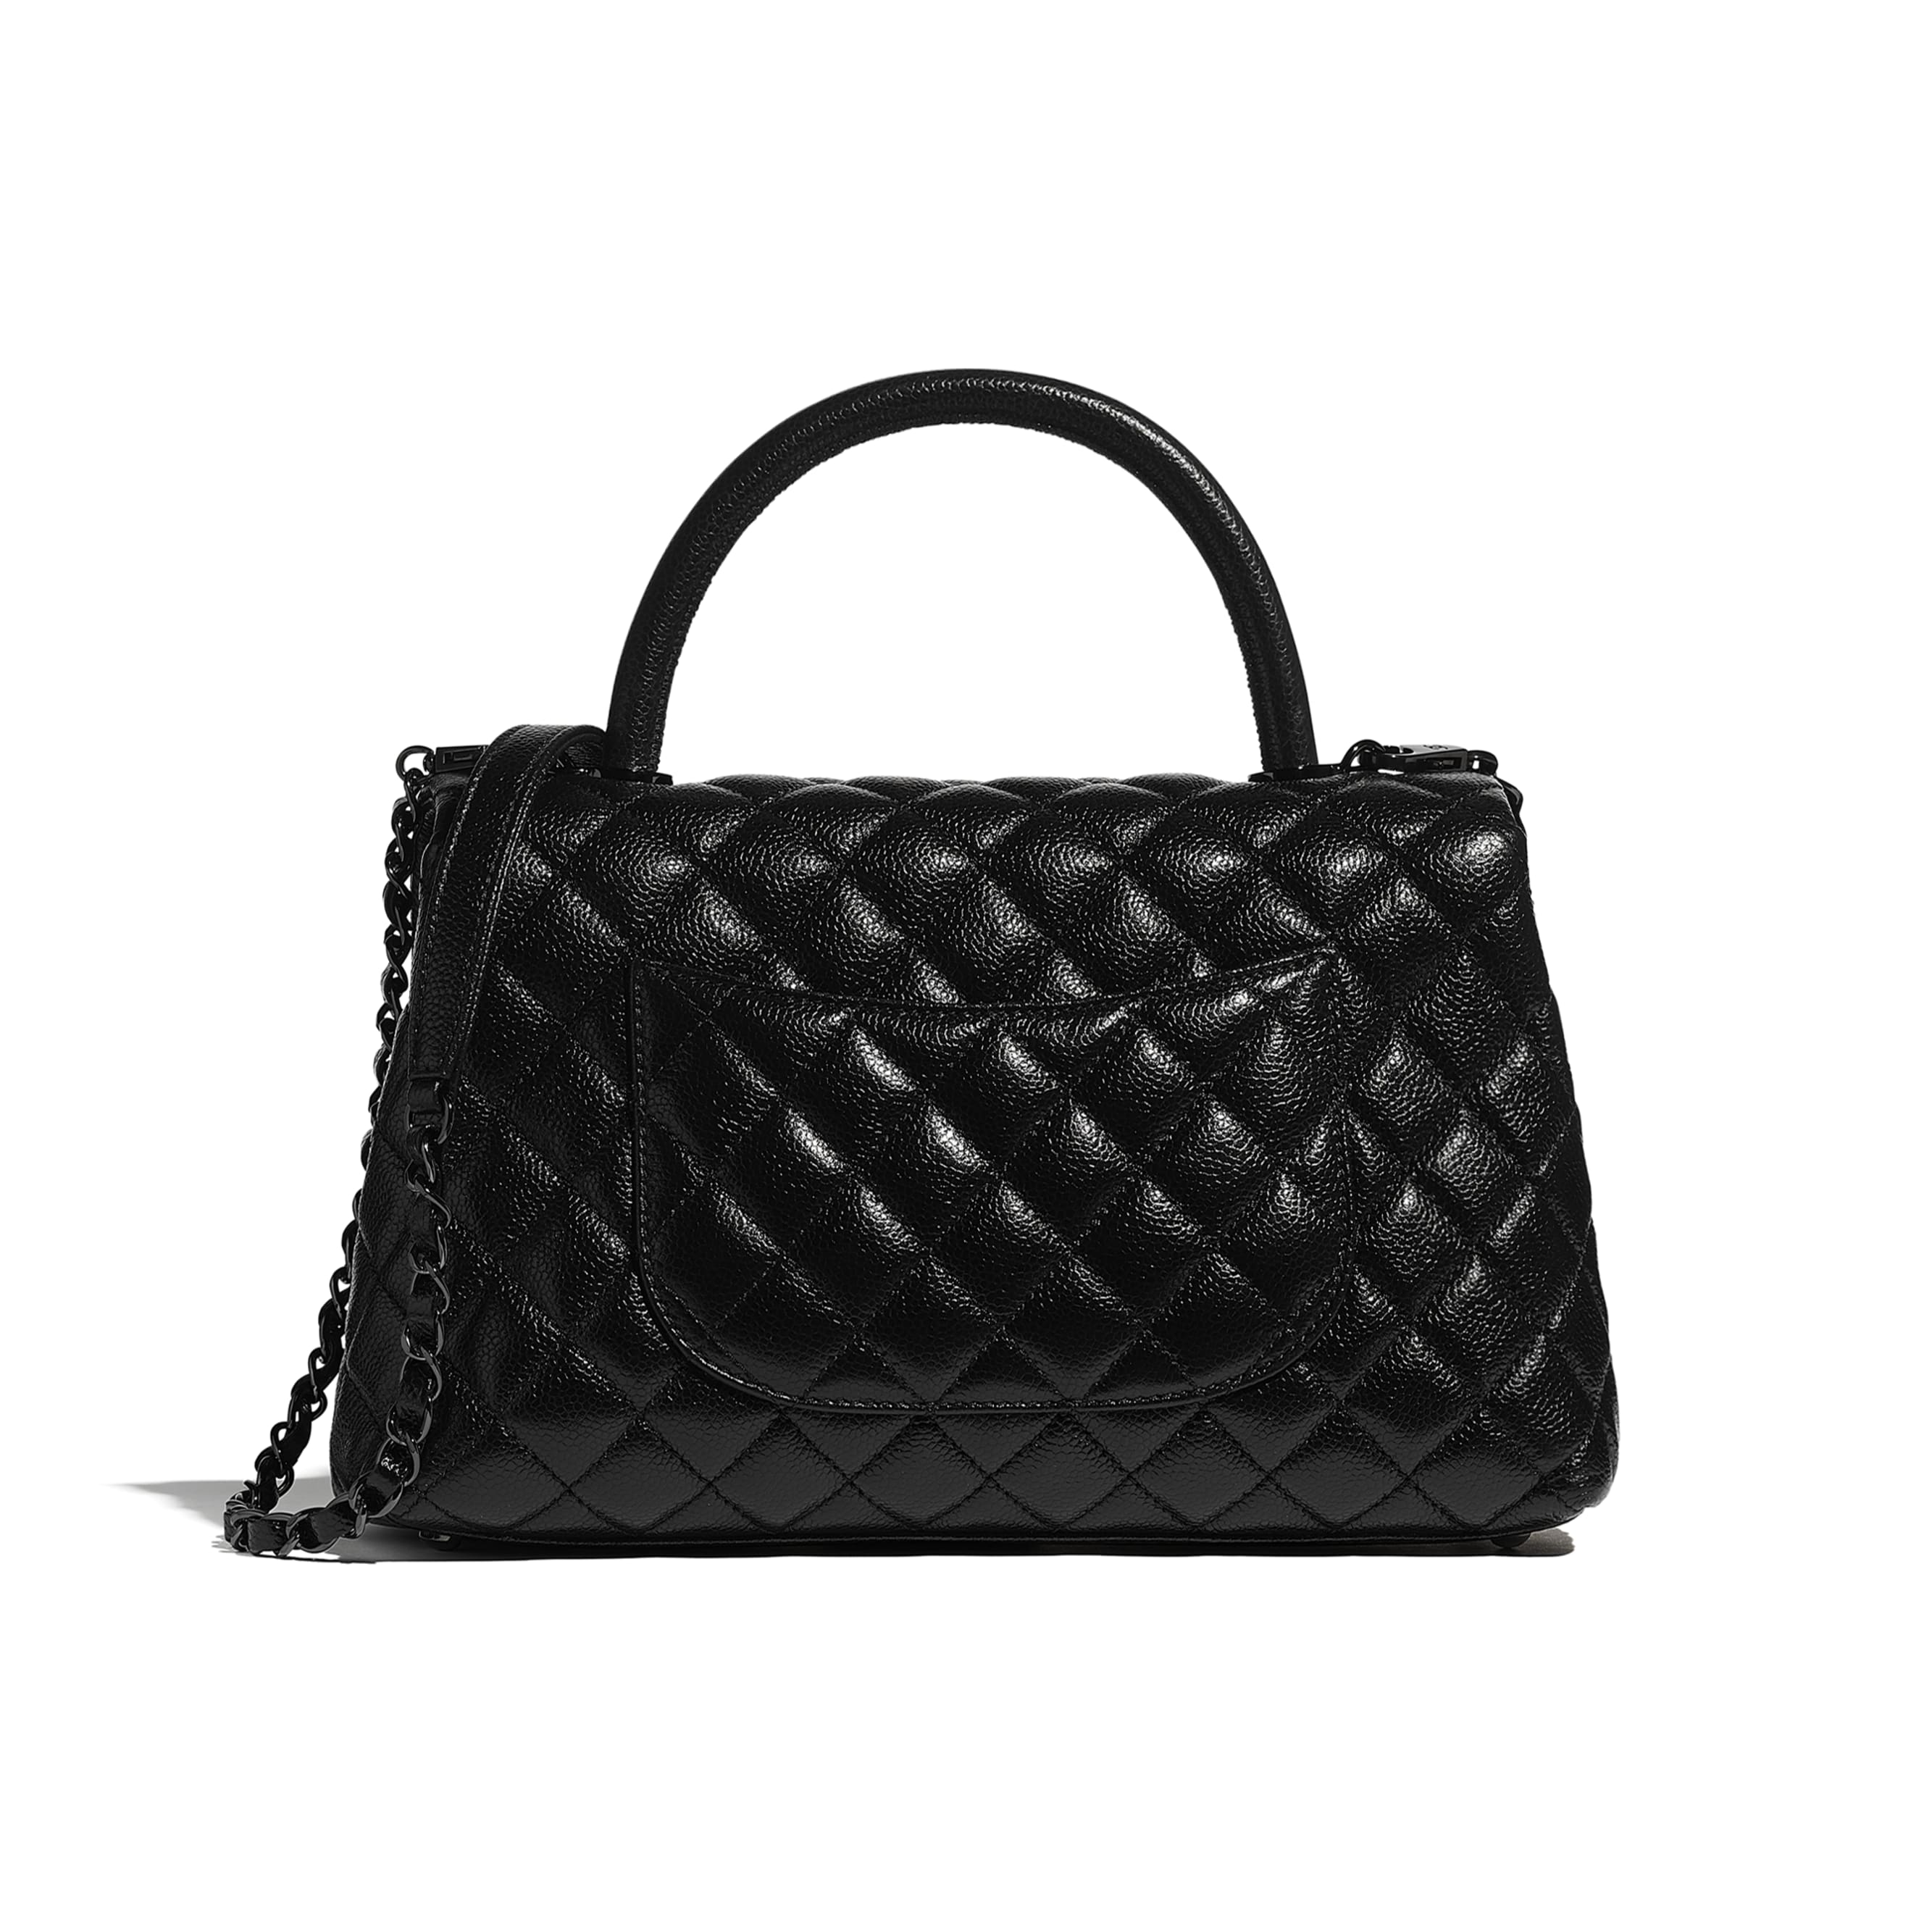 Flap Bag With Top Handle - Black - Grained Calfskin & Black Metal - CHANEL - Alternative view - see standard sized version